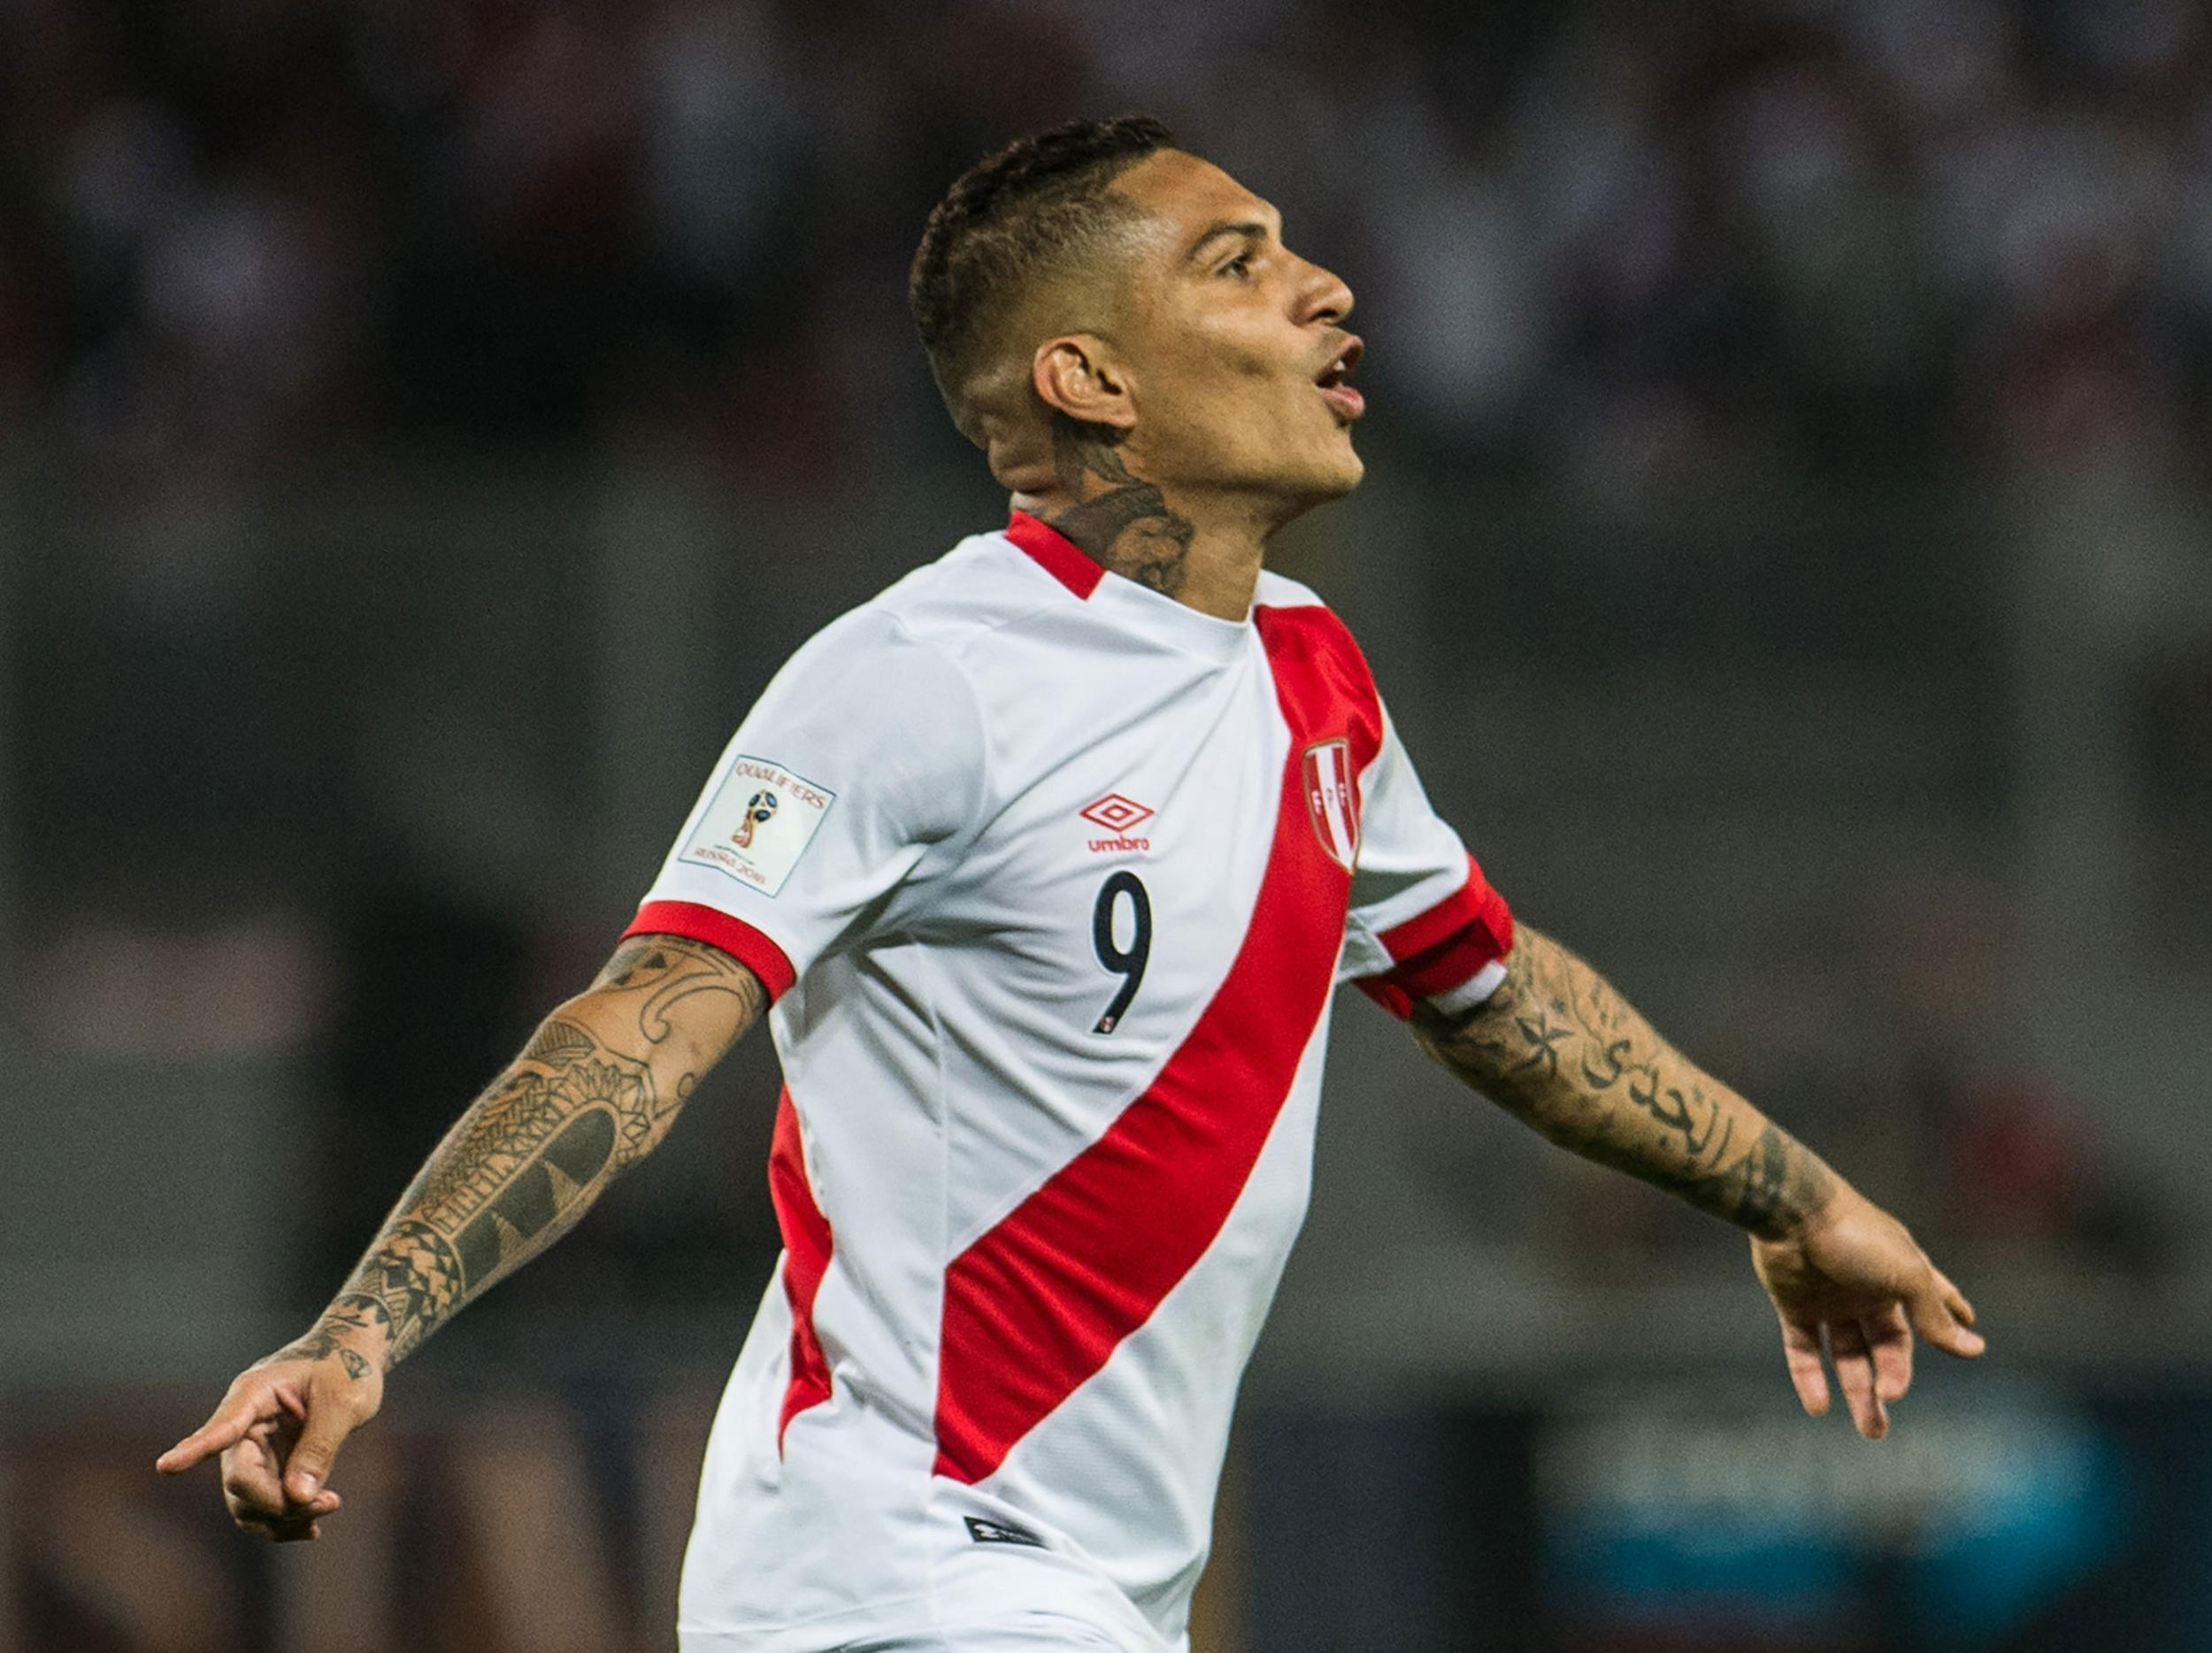 Peru captain Paolo Guerrero out of World Cup after testing positive for cocaine